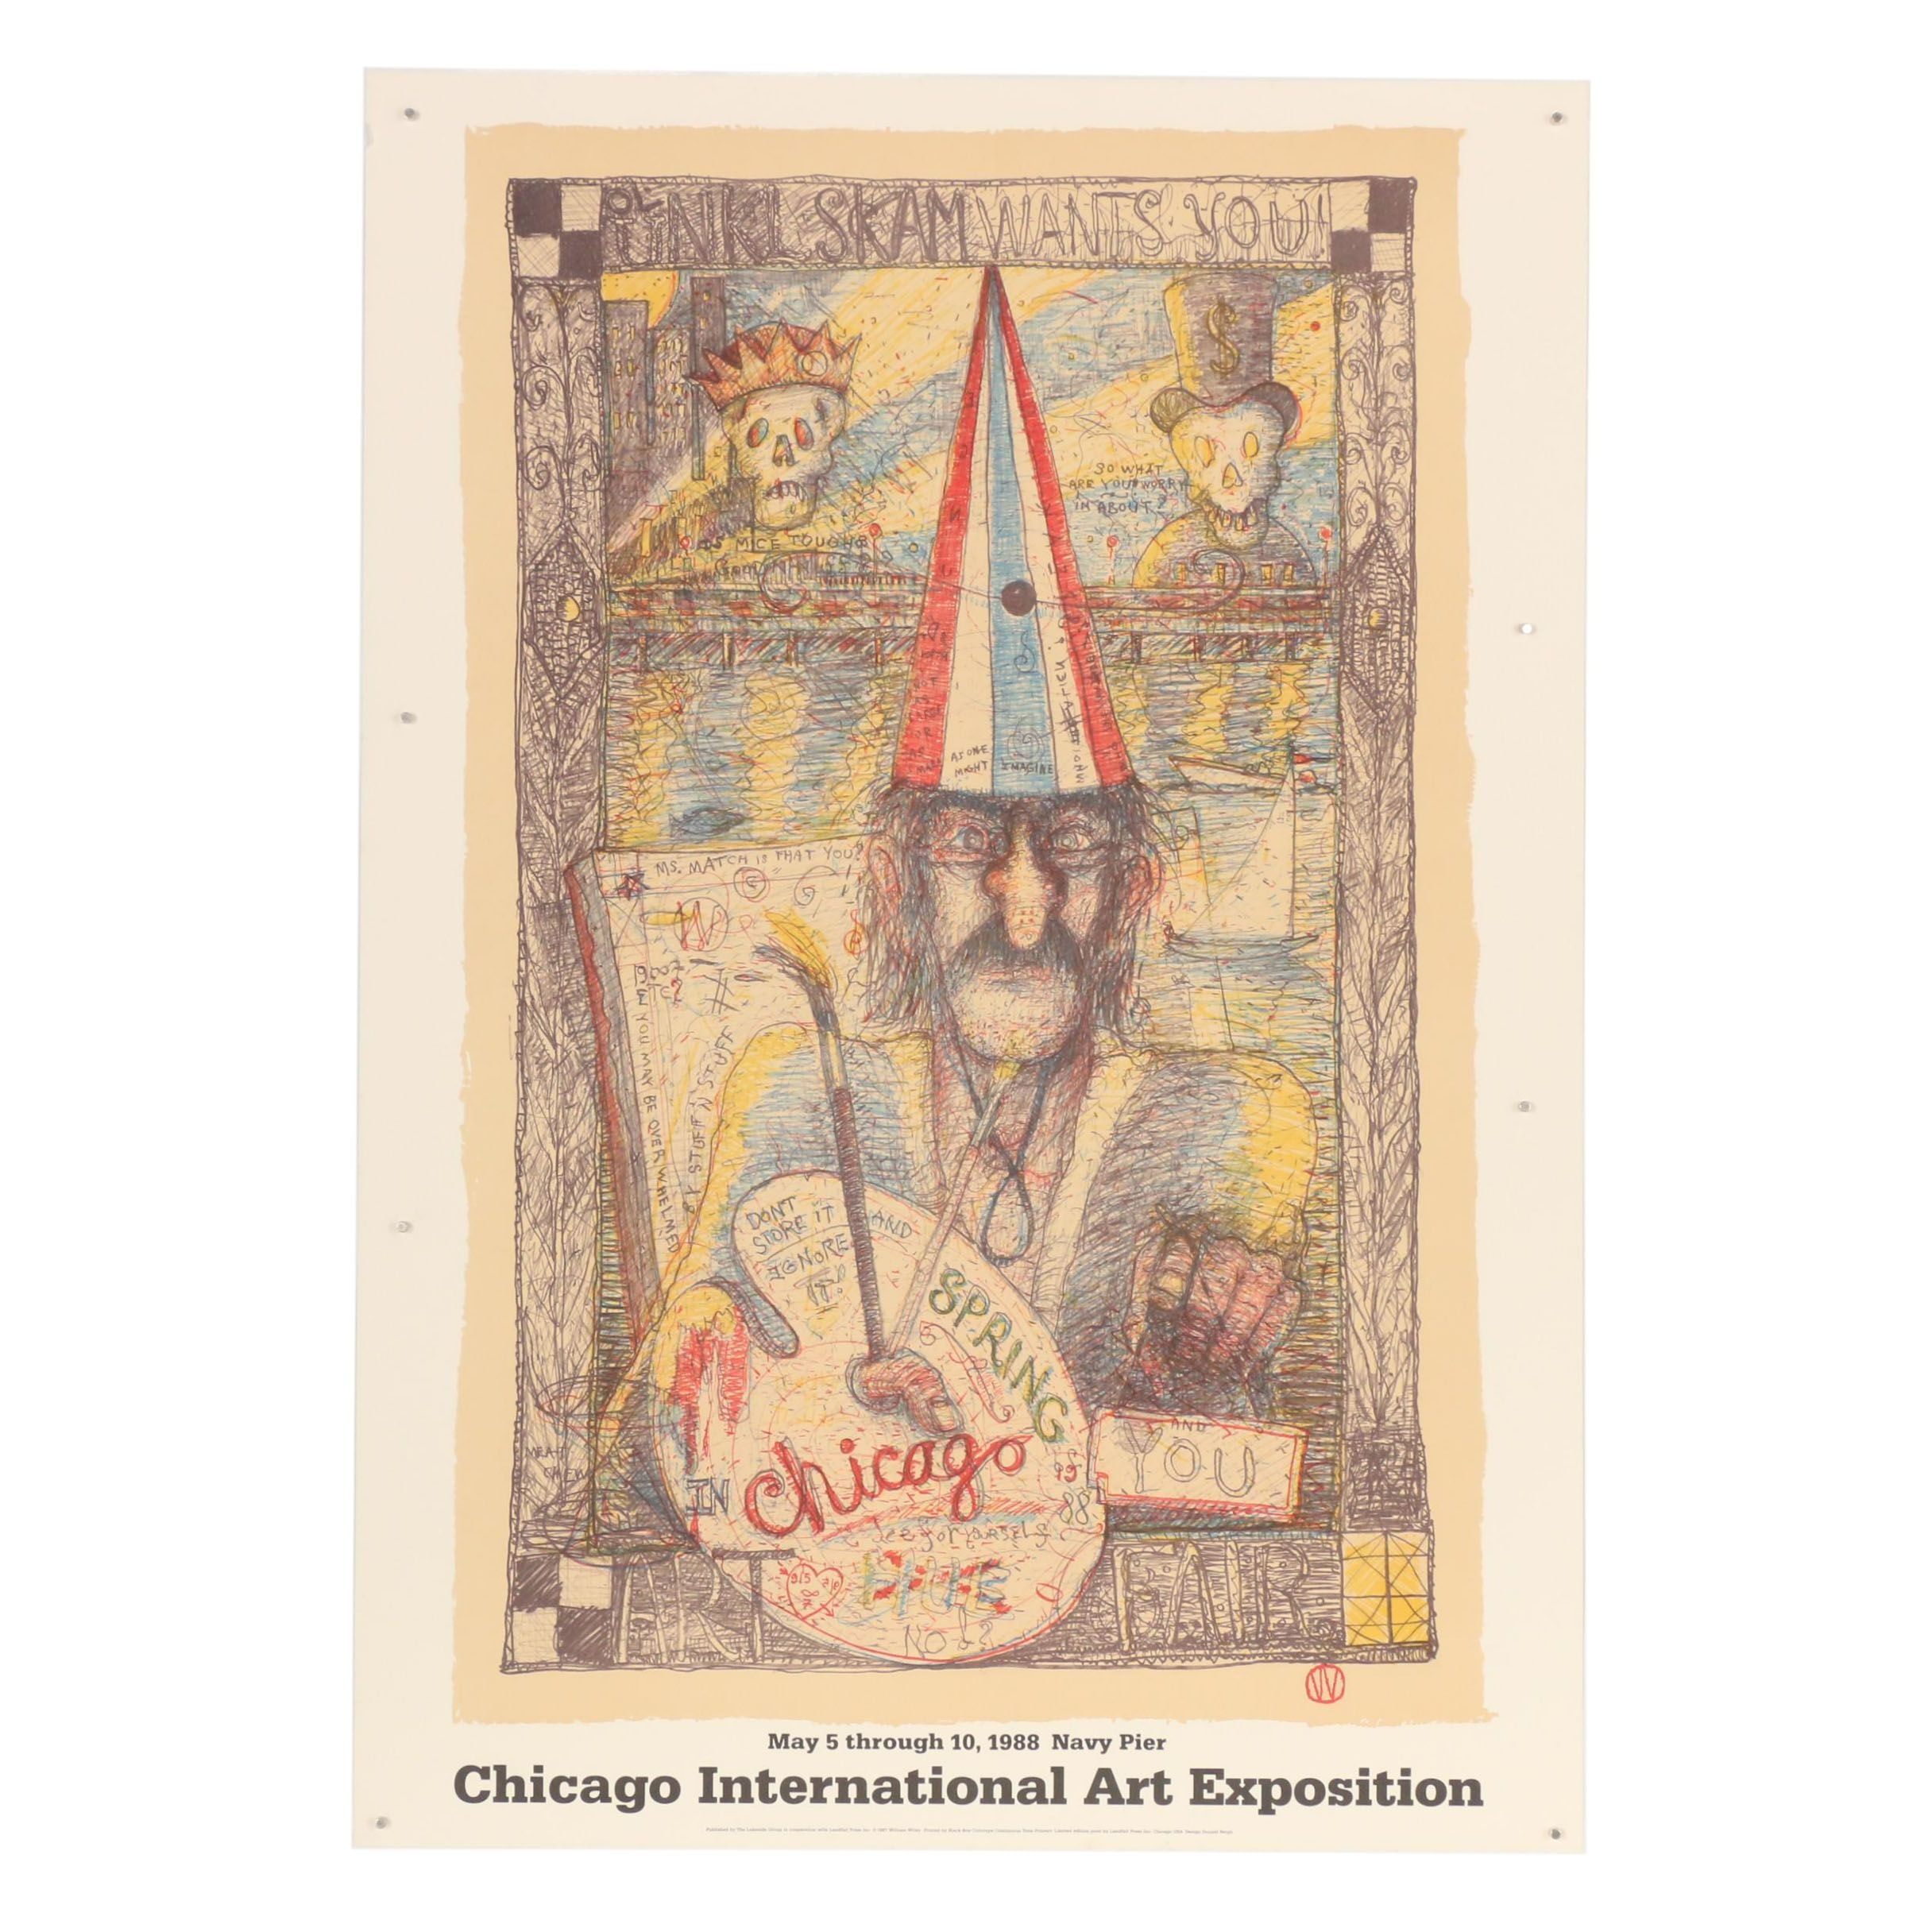 1988 Chicago International Art Exposition Lithograph after William T. Wiley